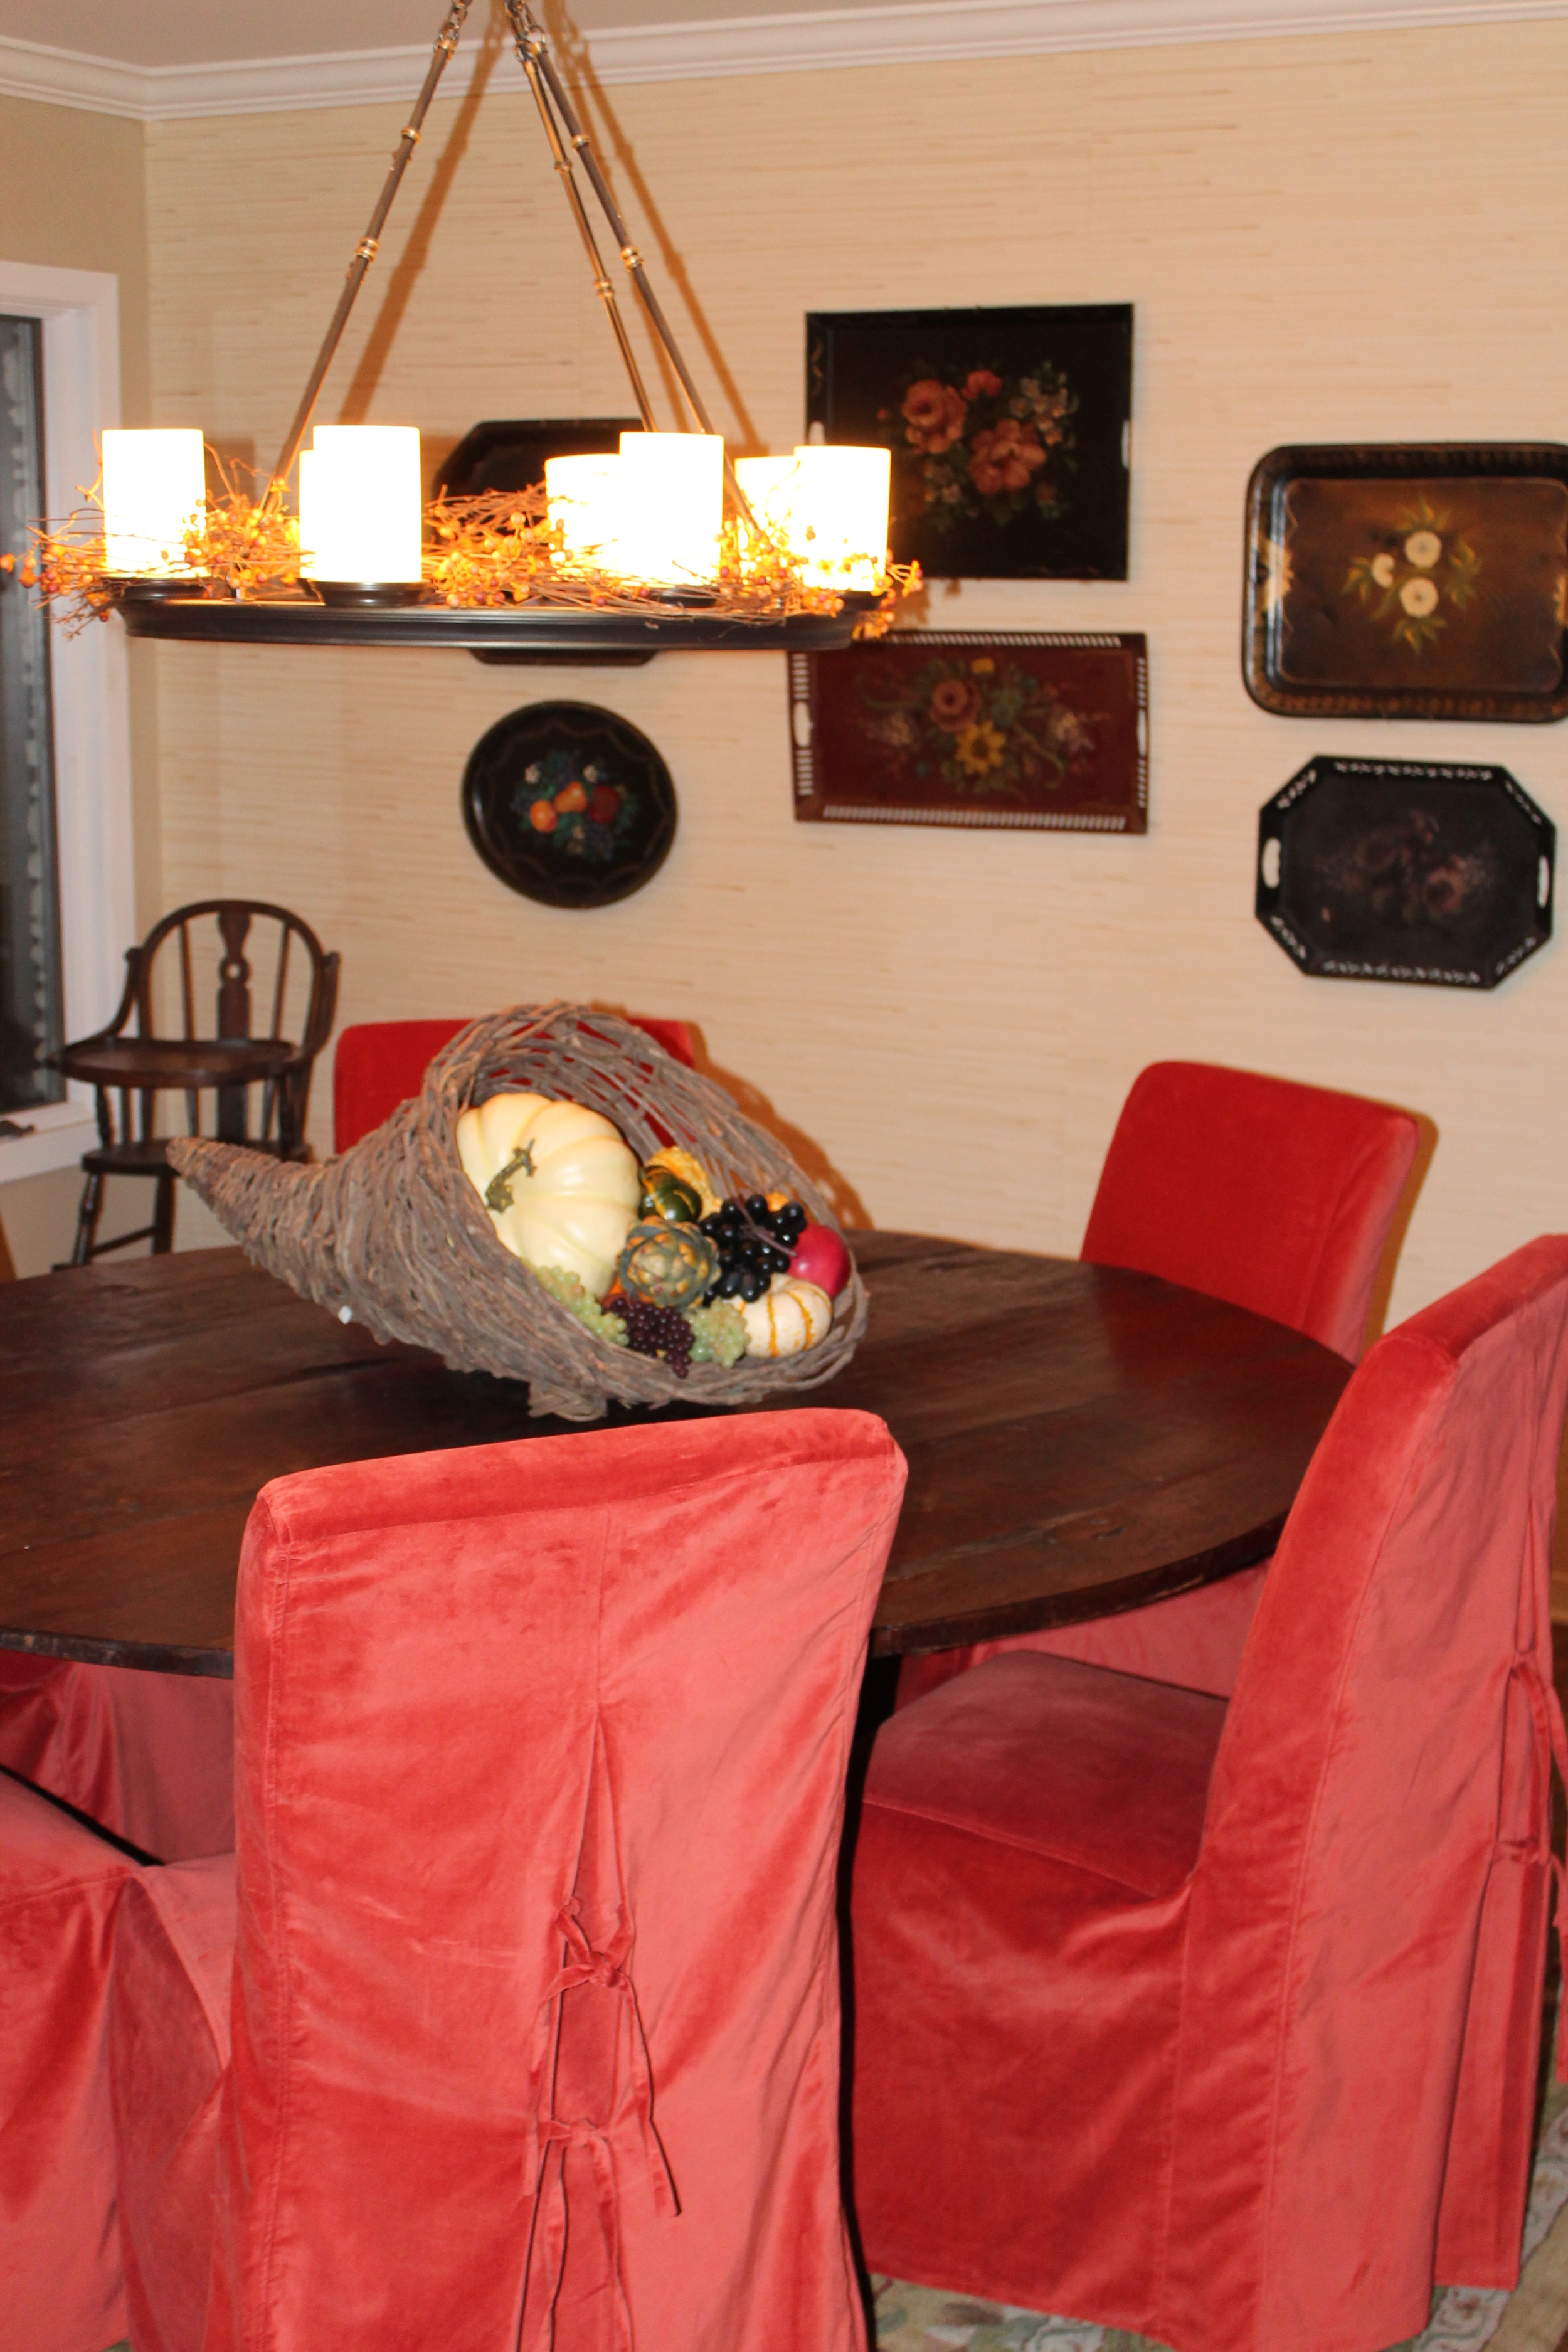 The cornucopia center piece comes next, and the dining room is finished!